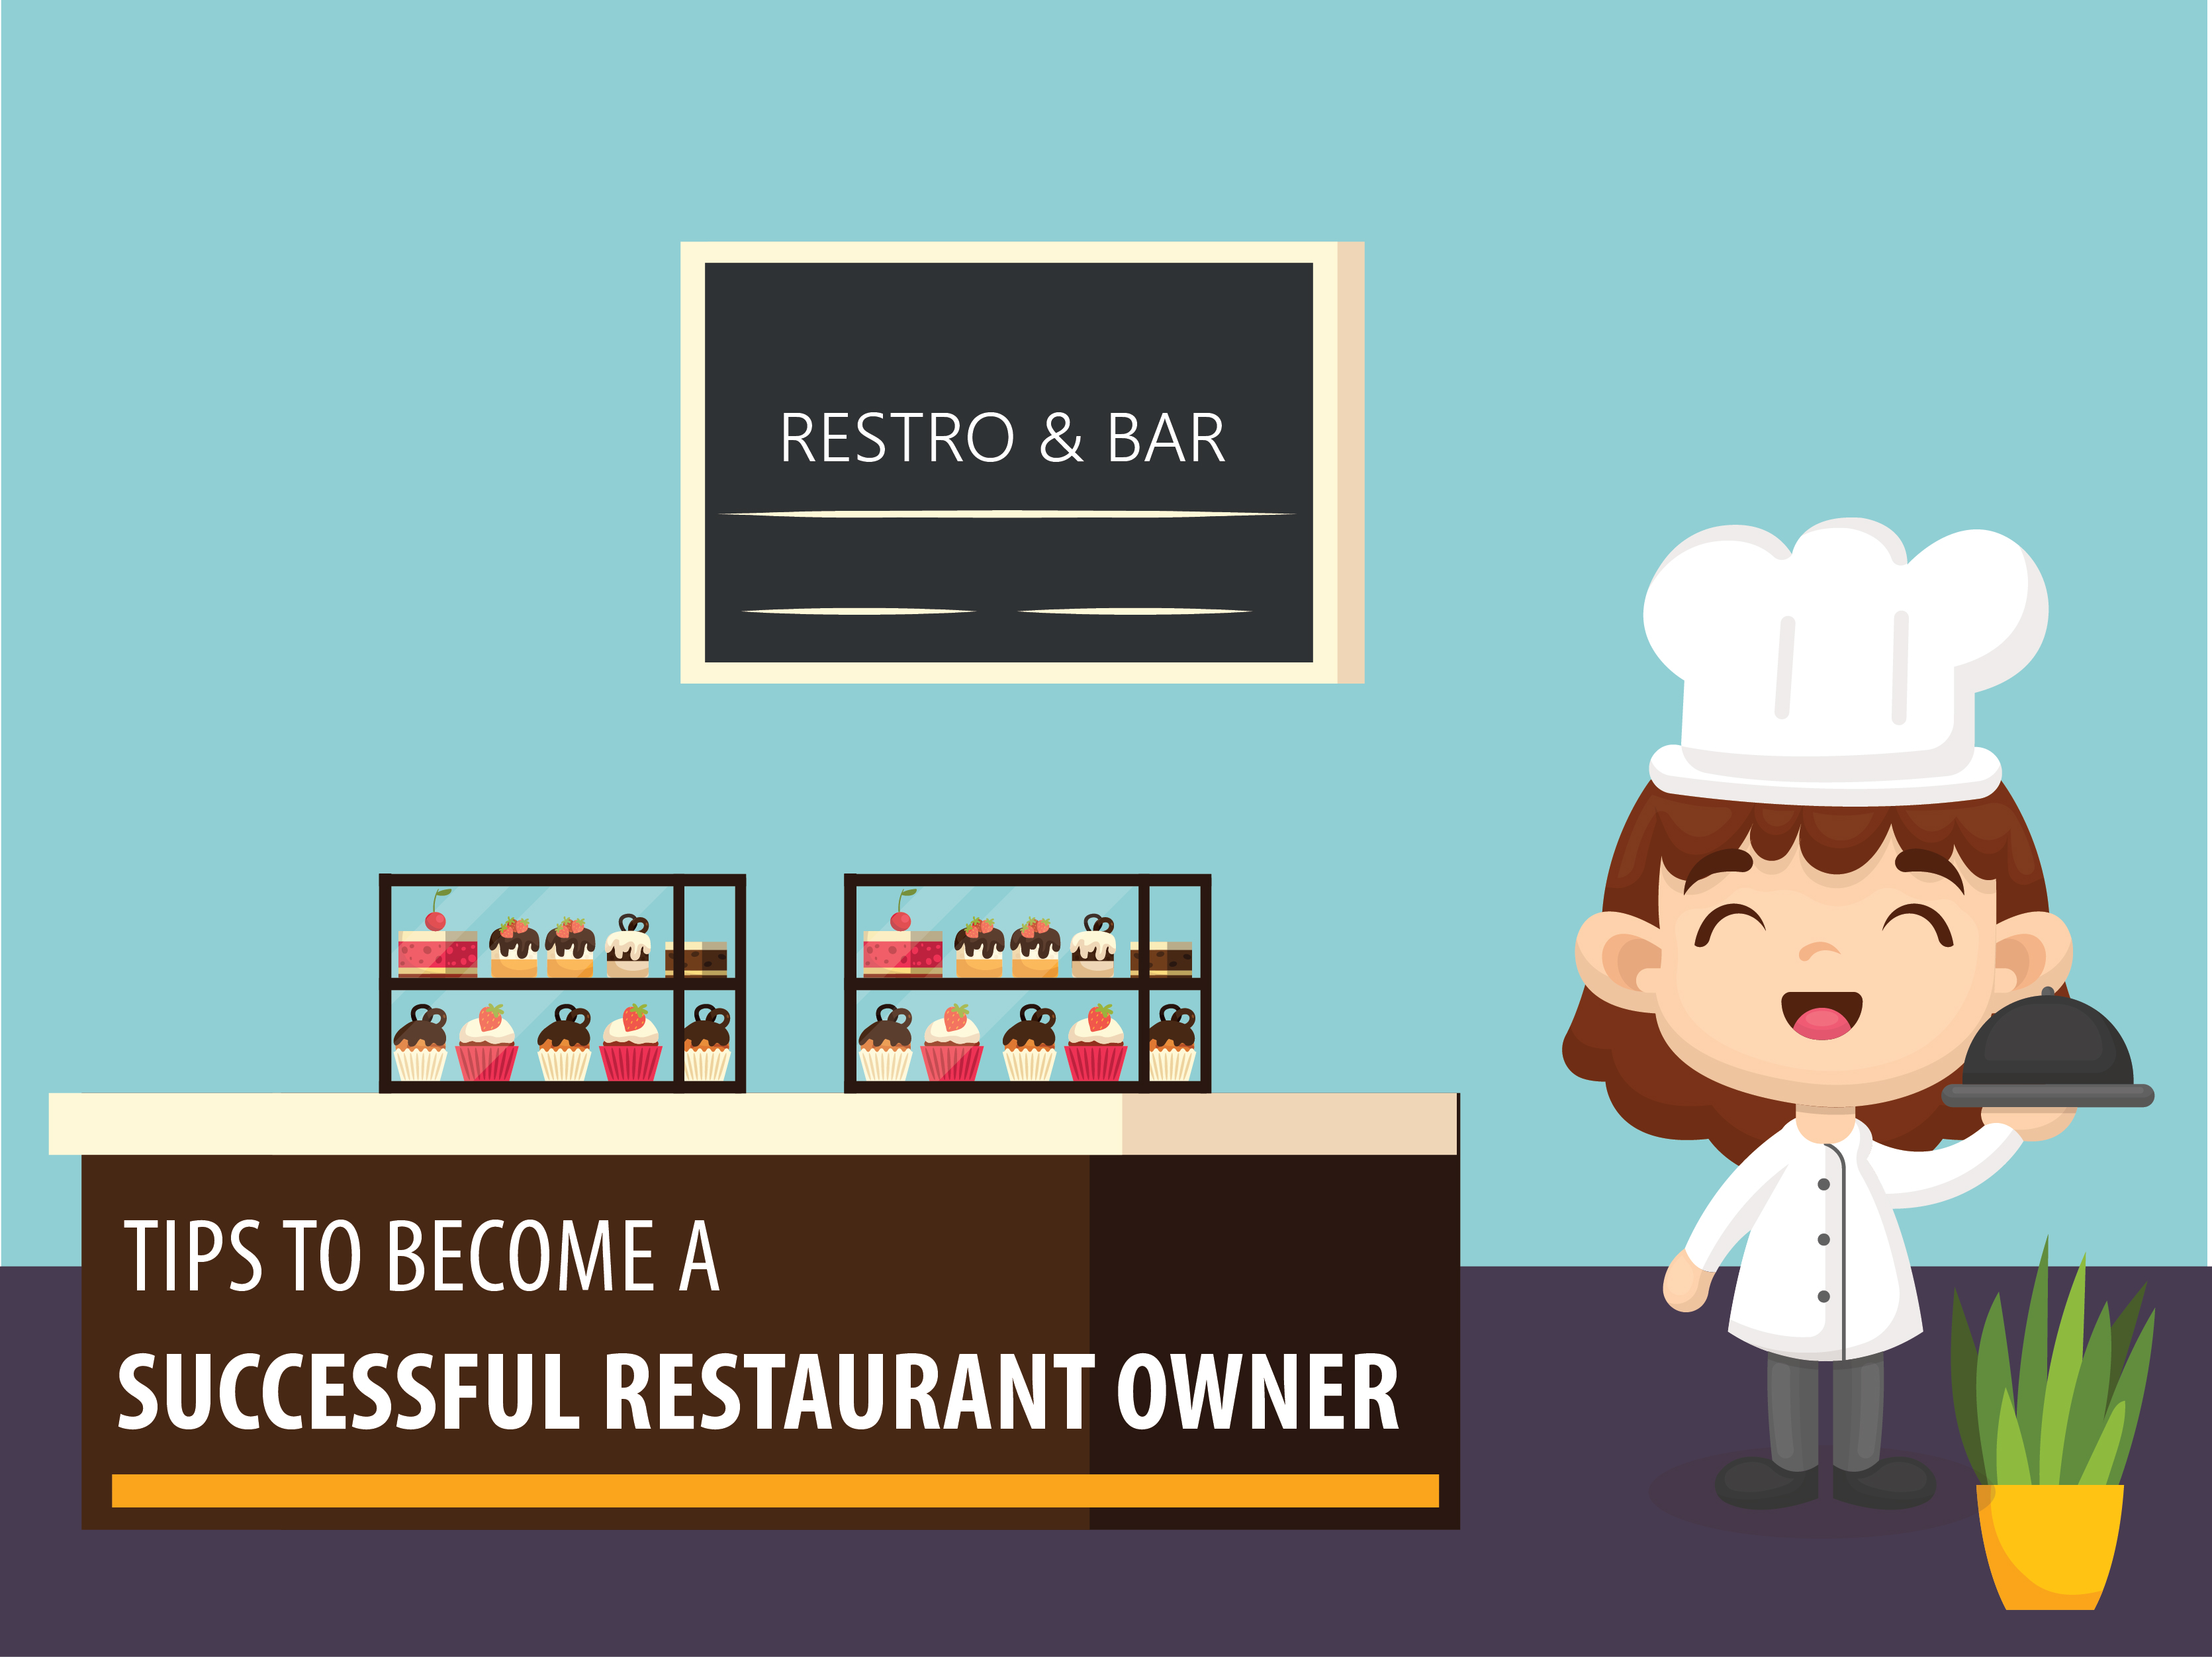 tips to become a successful restaurant owner 800 x 600